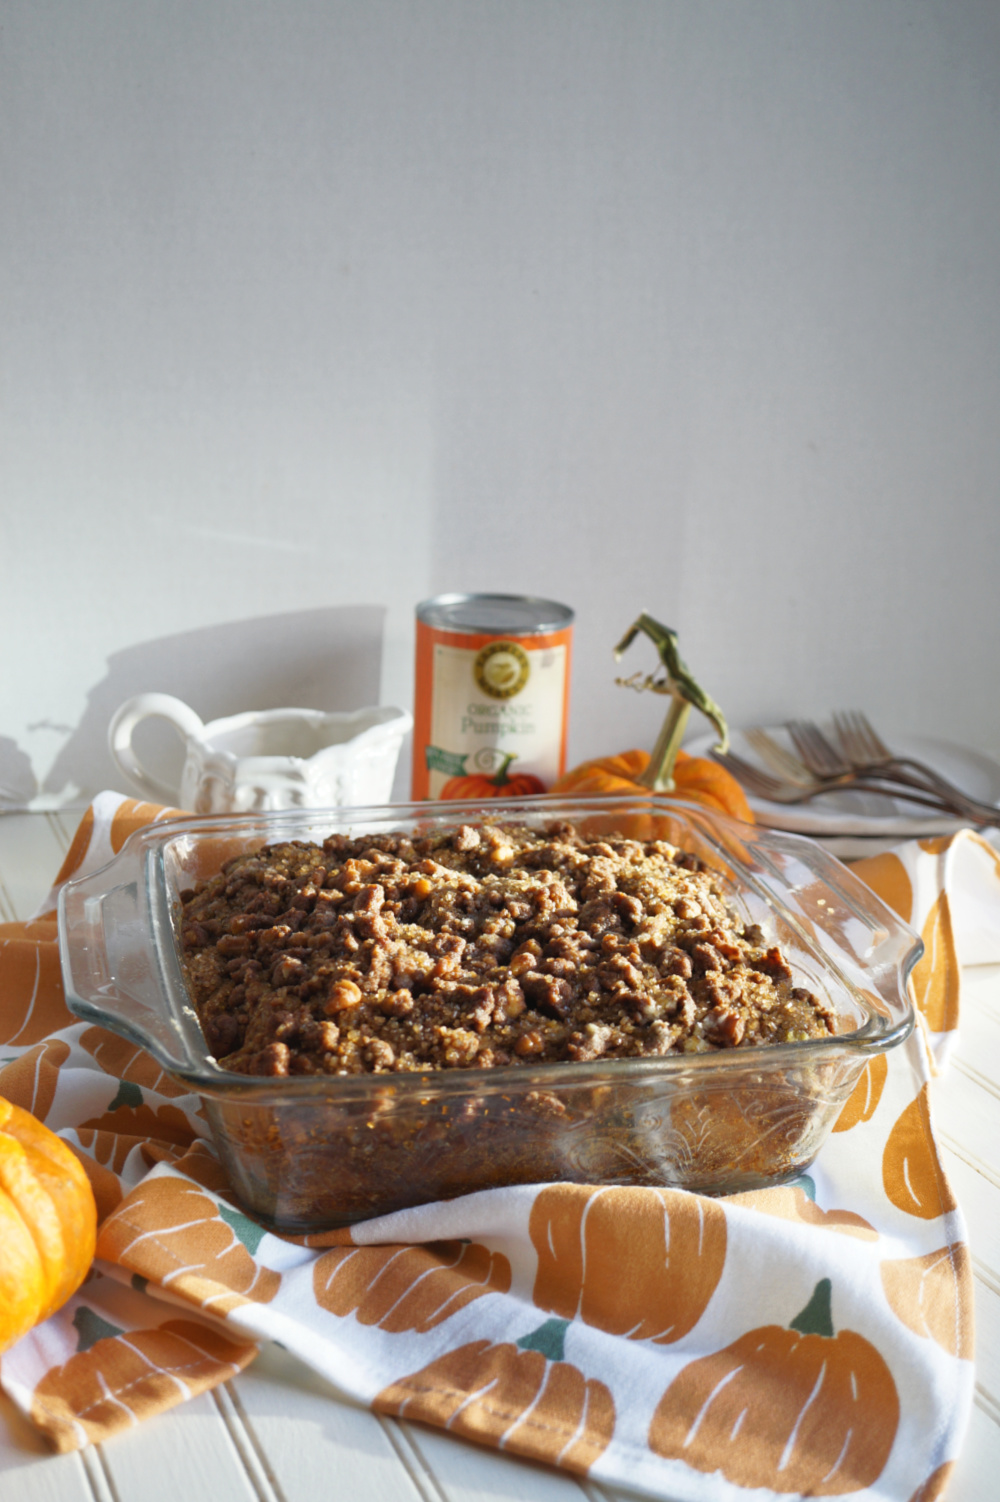 pan of coffee cake with crumble topping